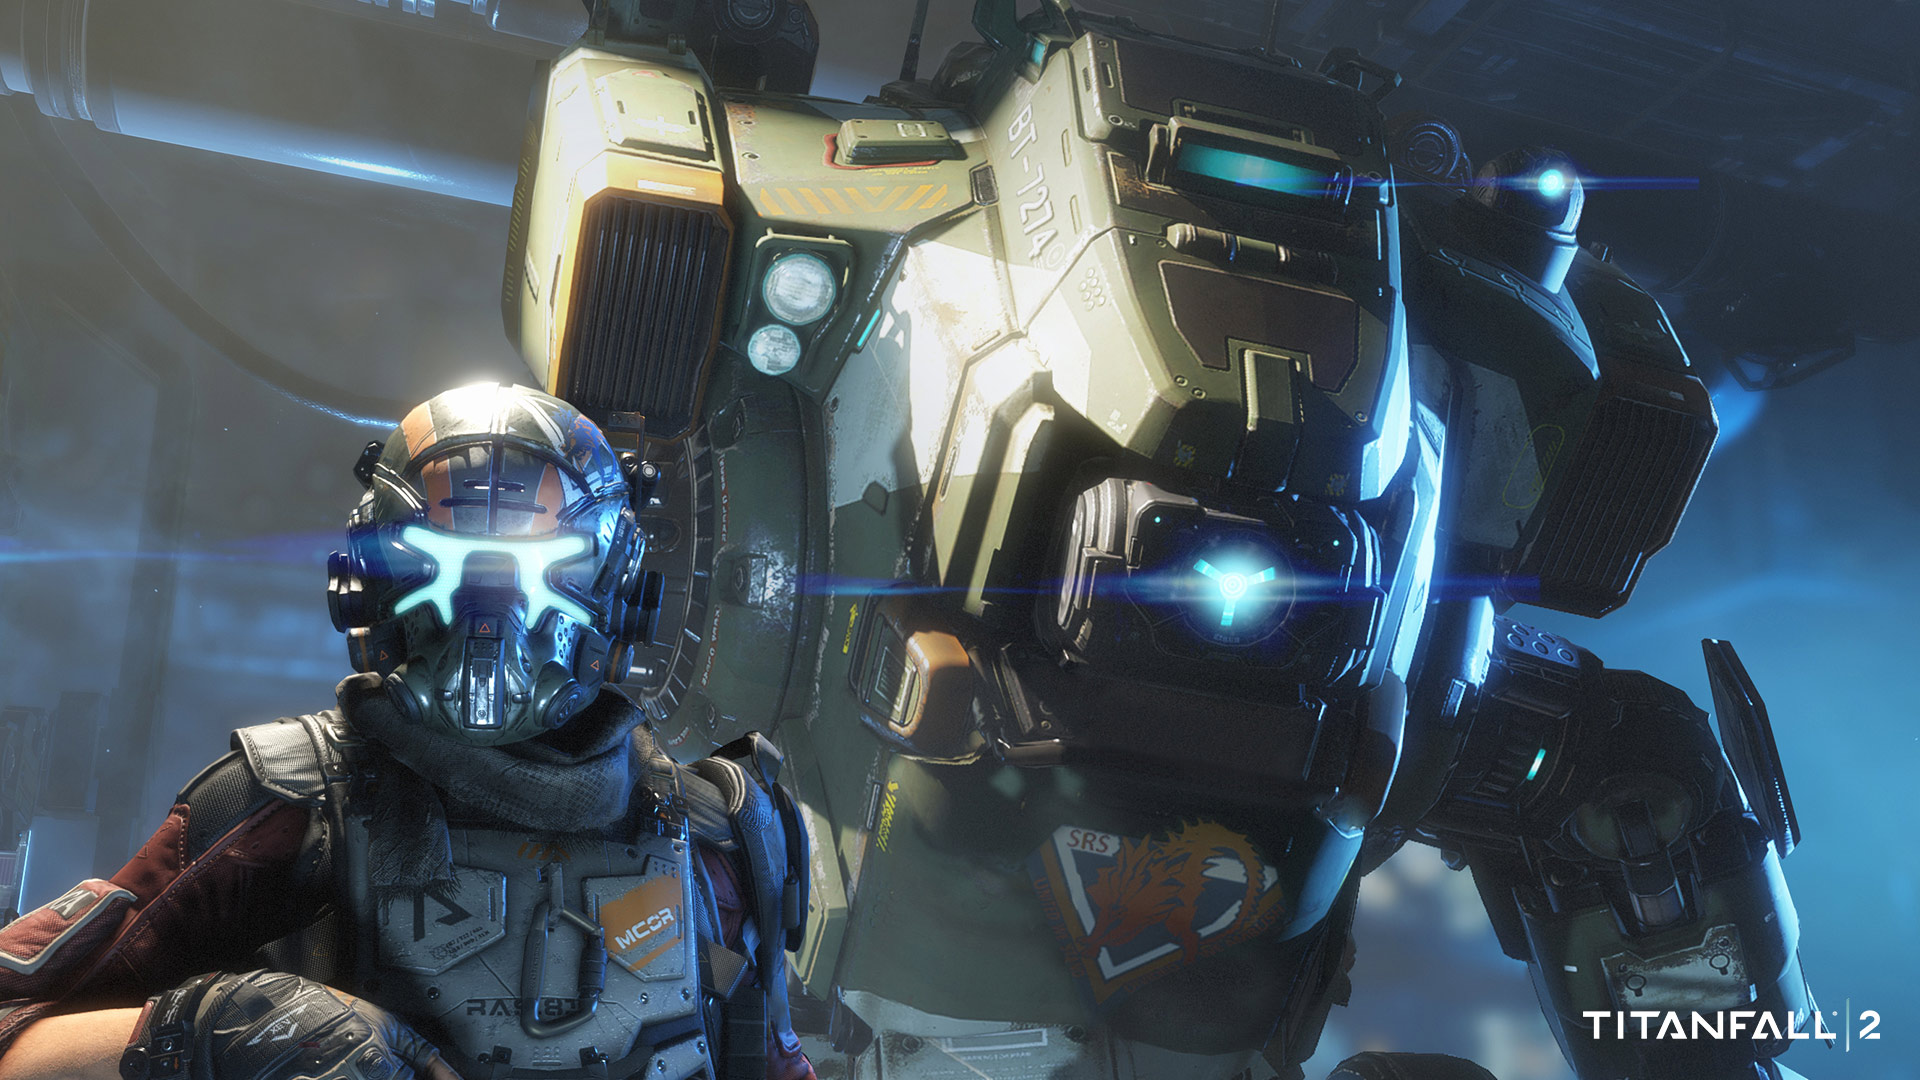 41 titanfall 2 hd wallpapers background images - Epic titanfall 2 wallpapers ...